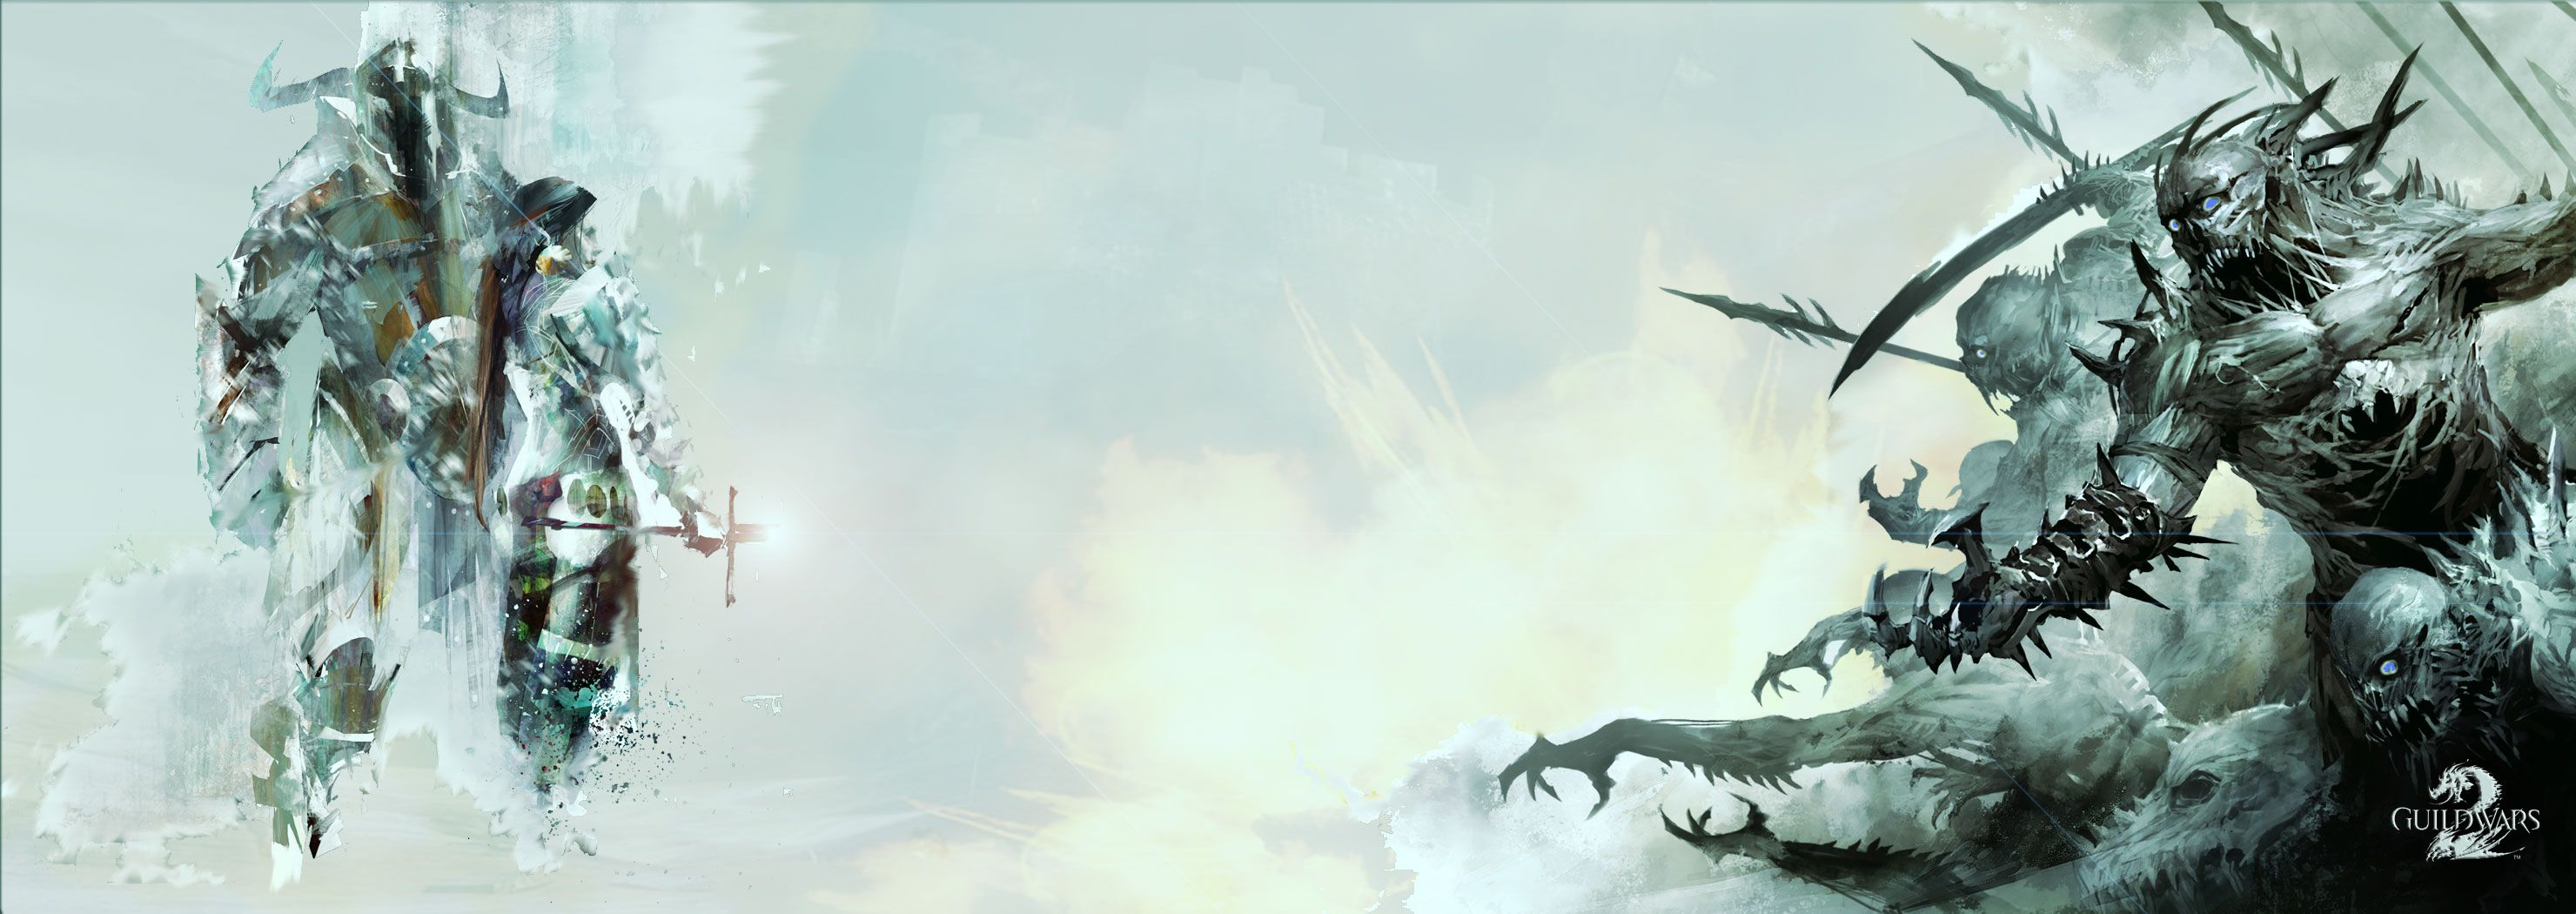 A Guild Wars 2 Wallpaper for the resolution 2960 x 1050 dual 2960x1050